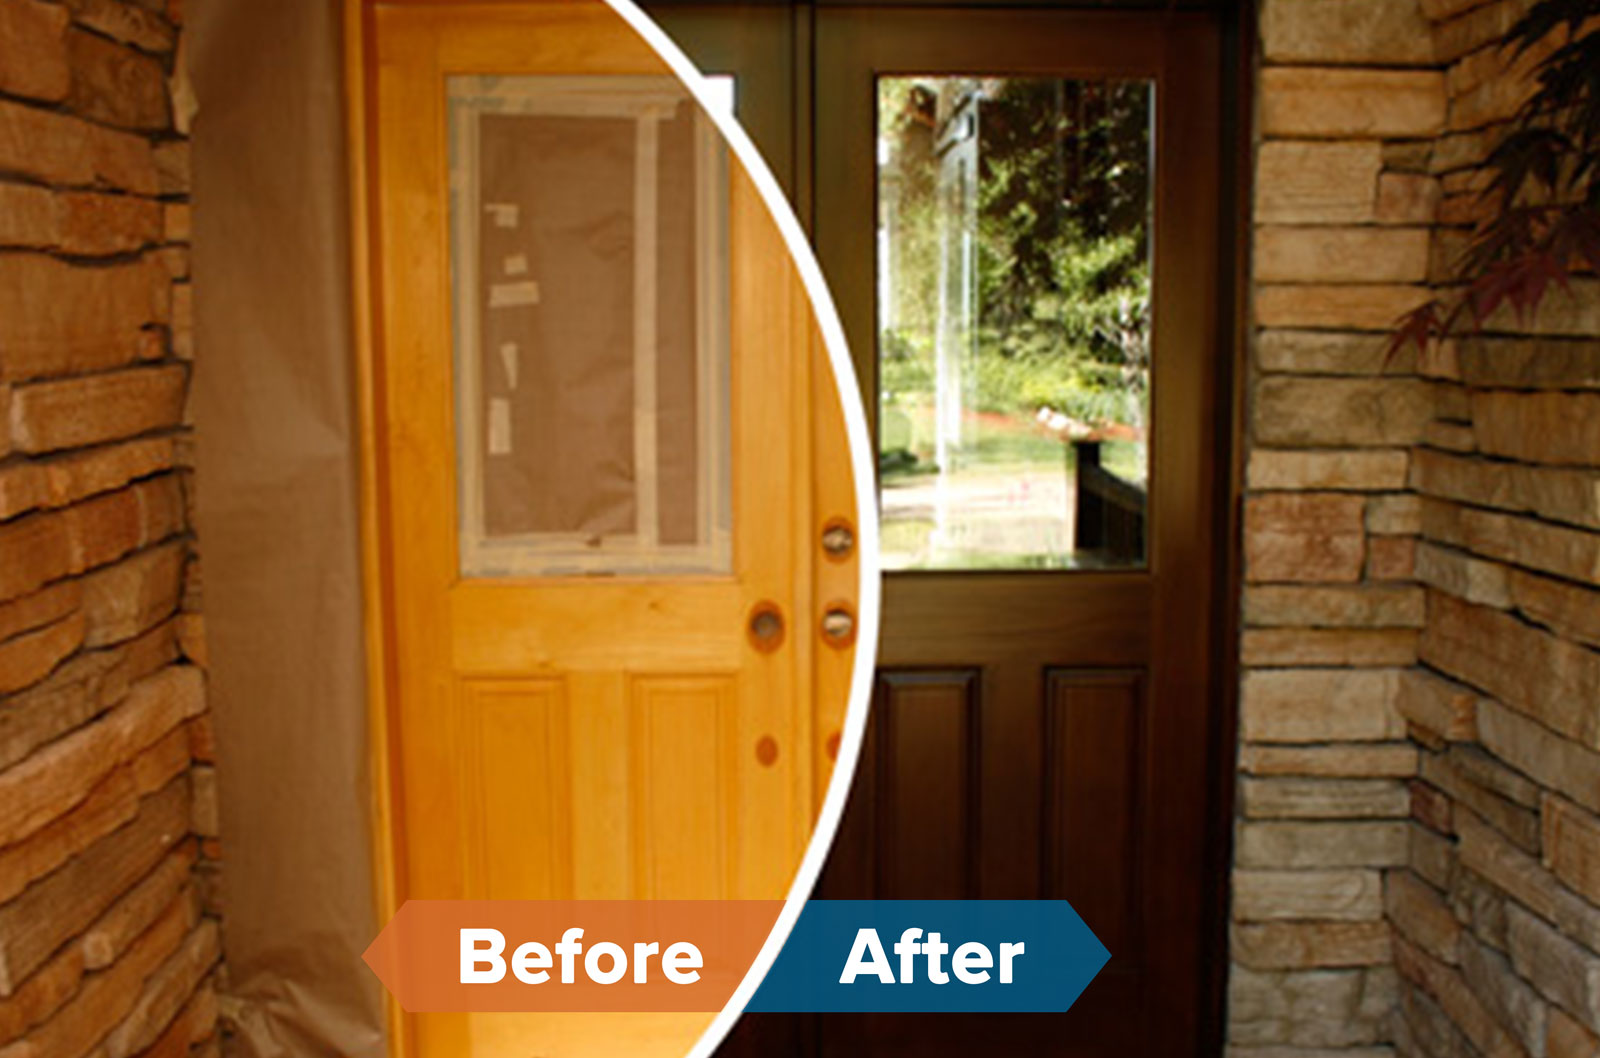 wood refinishing franchise before and after